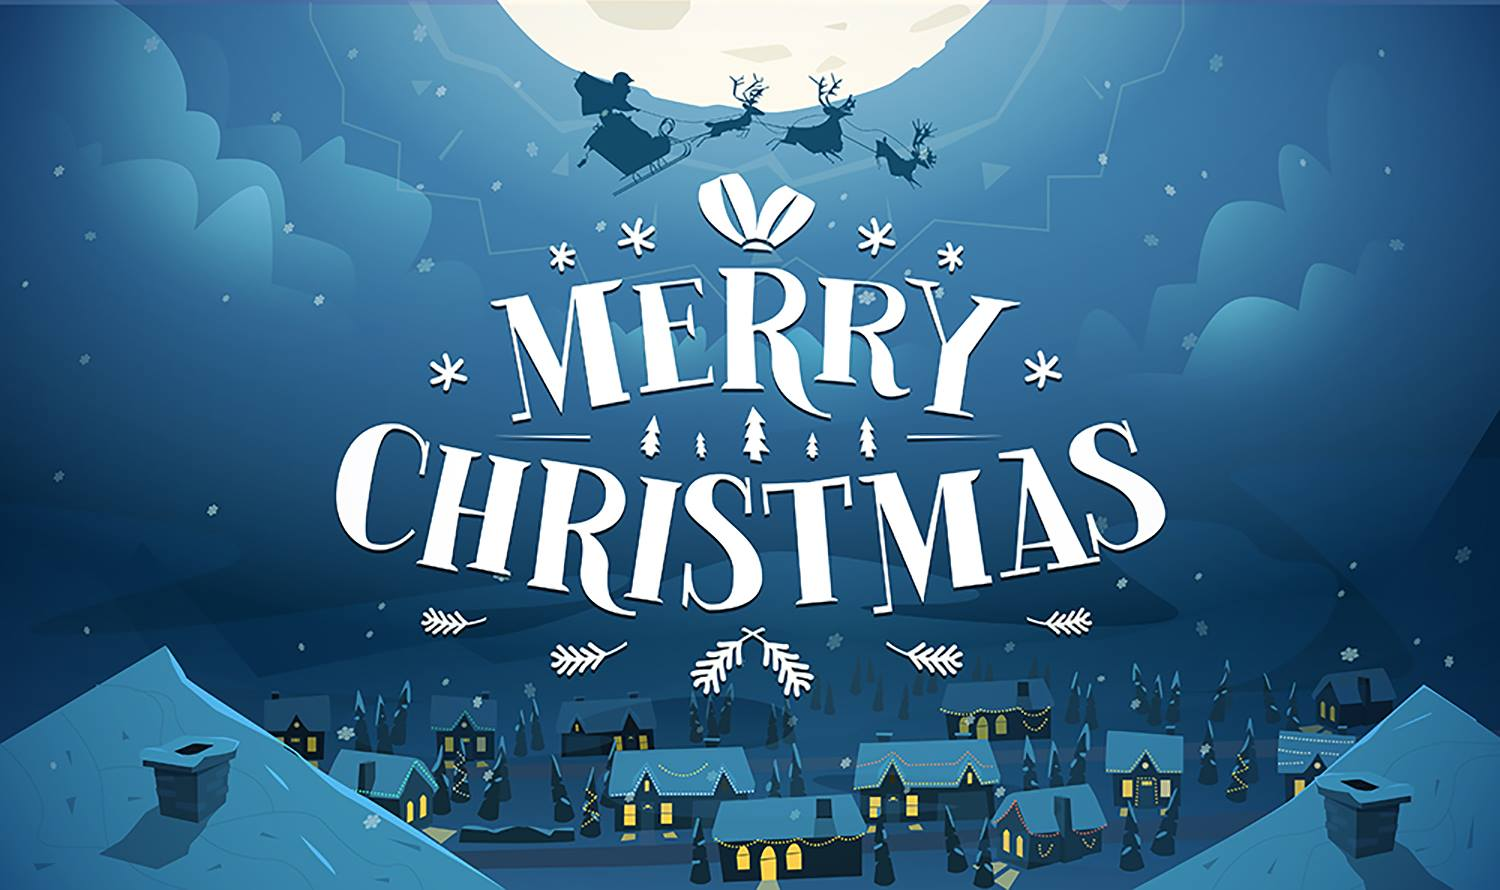 Merry Christmas Everyone! – Manchester Storm